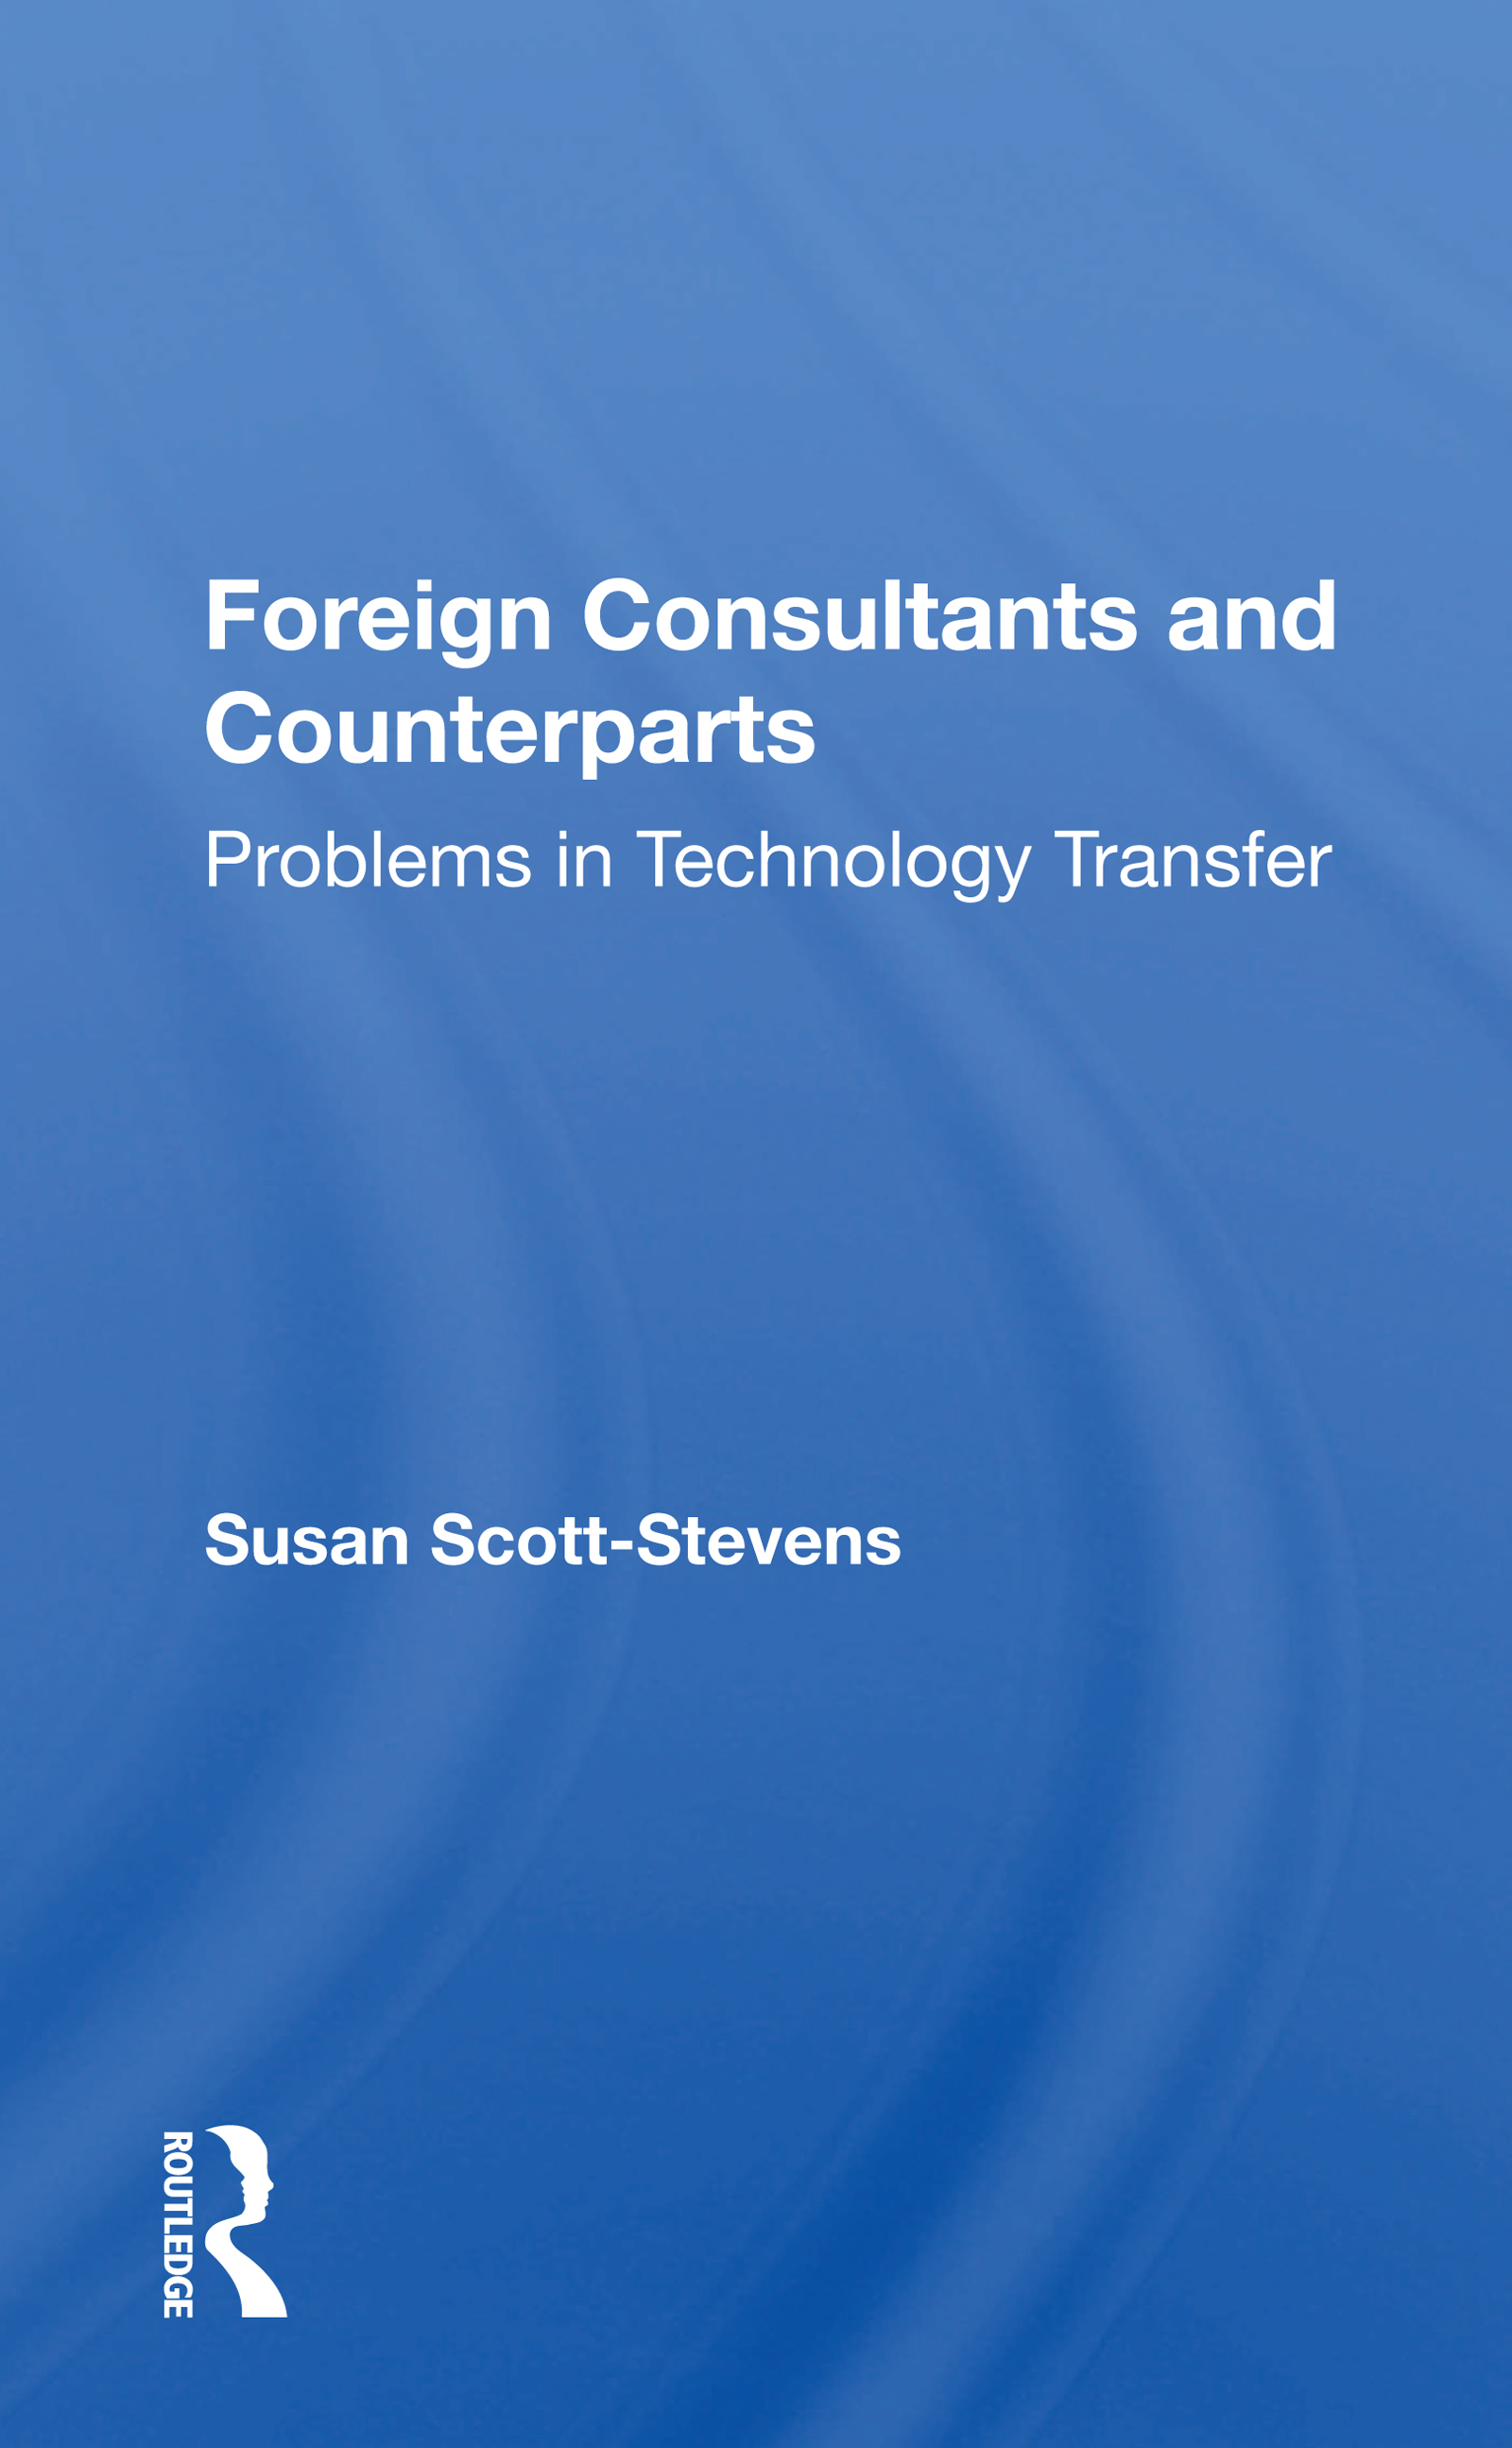 Foreign Consultants and Counterparts